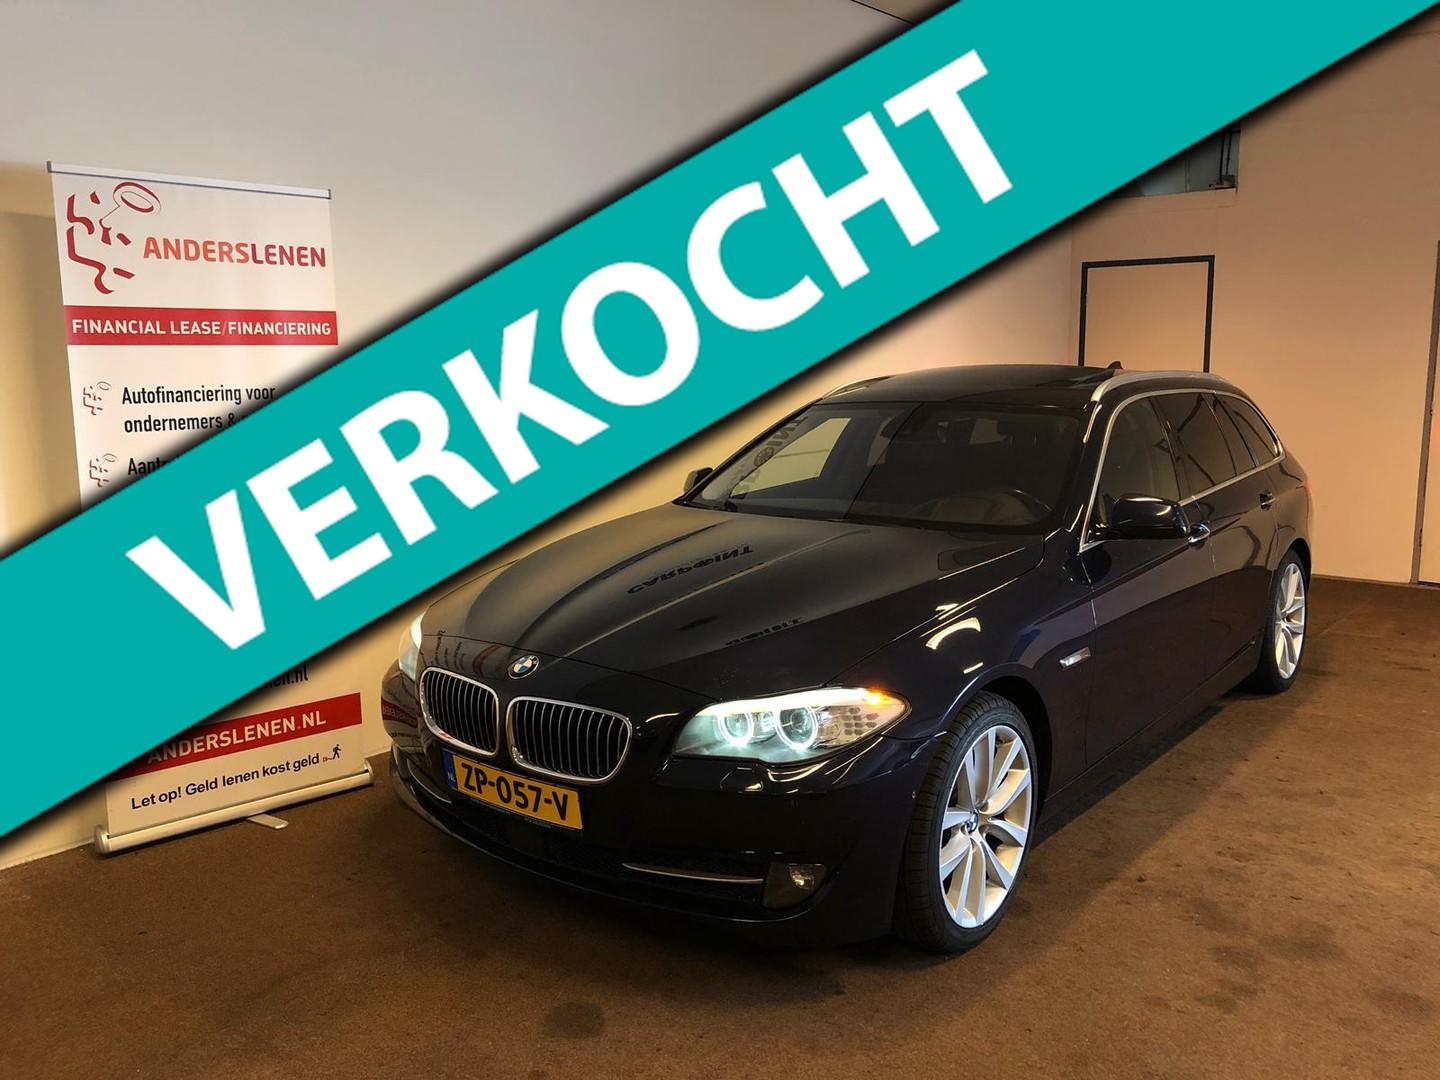 Bmw 5 serie Touring 530d high executive 2011 panodak*adap cruise contr*headup display*volle uitv